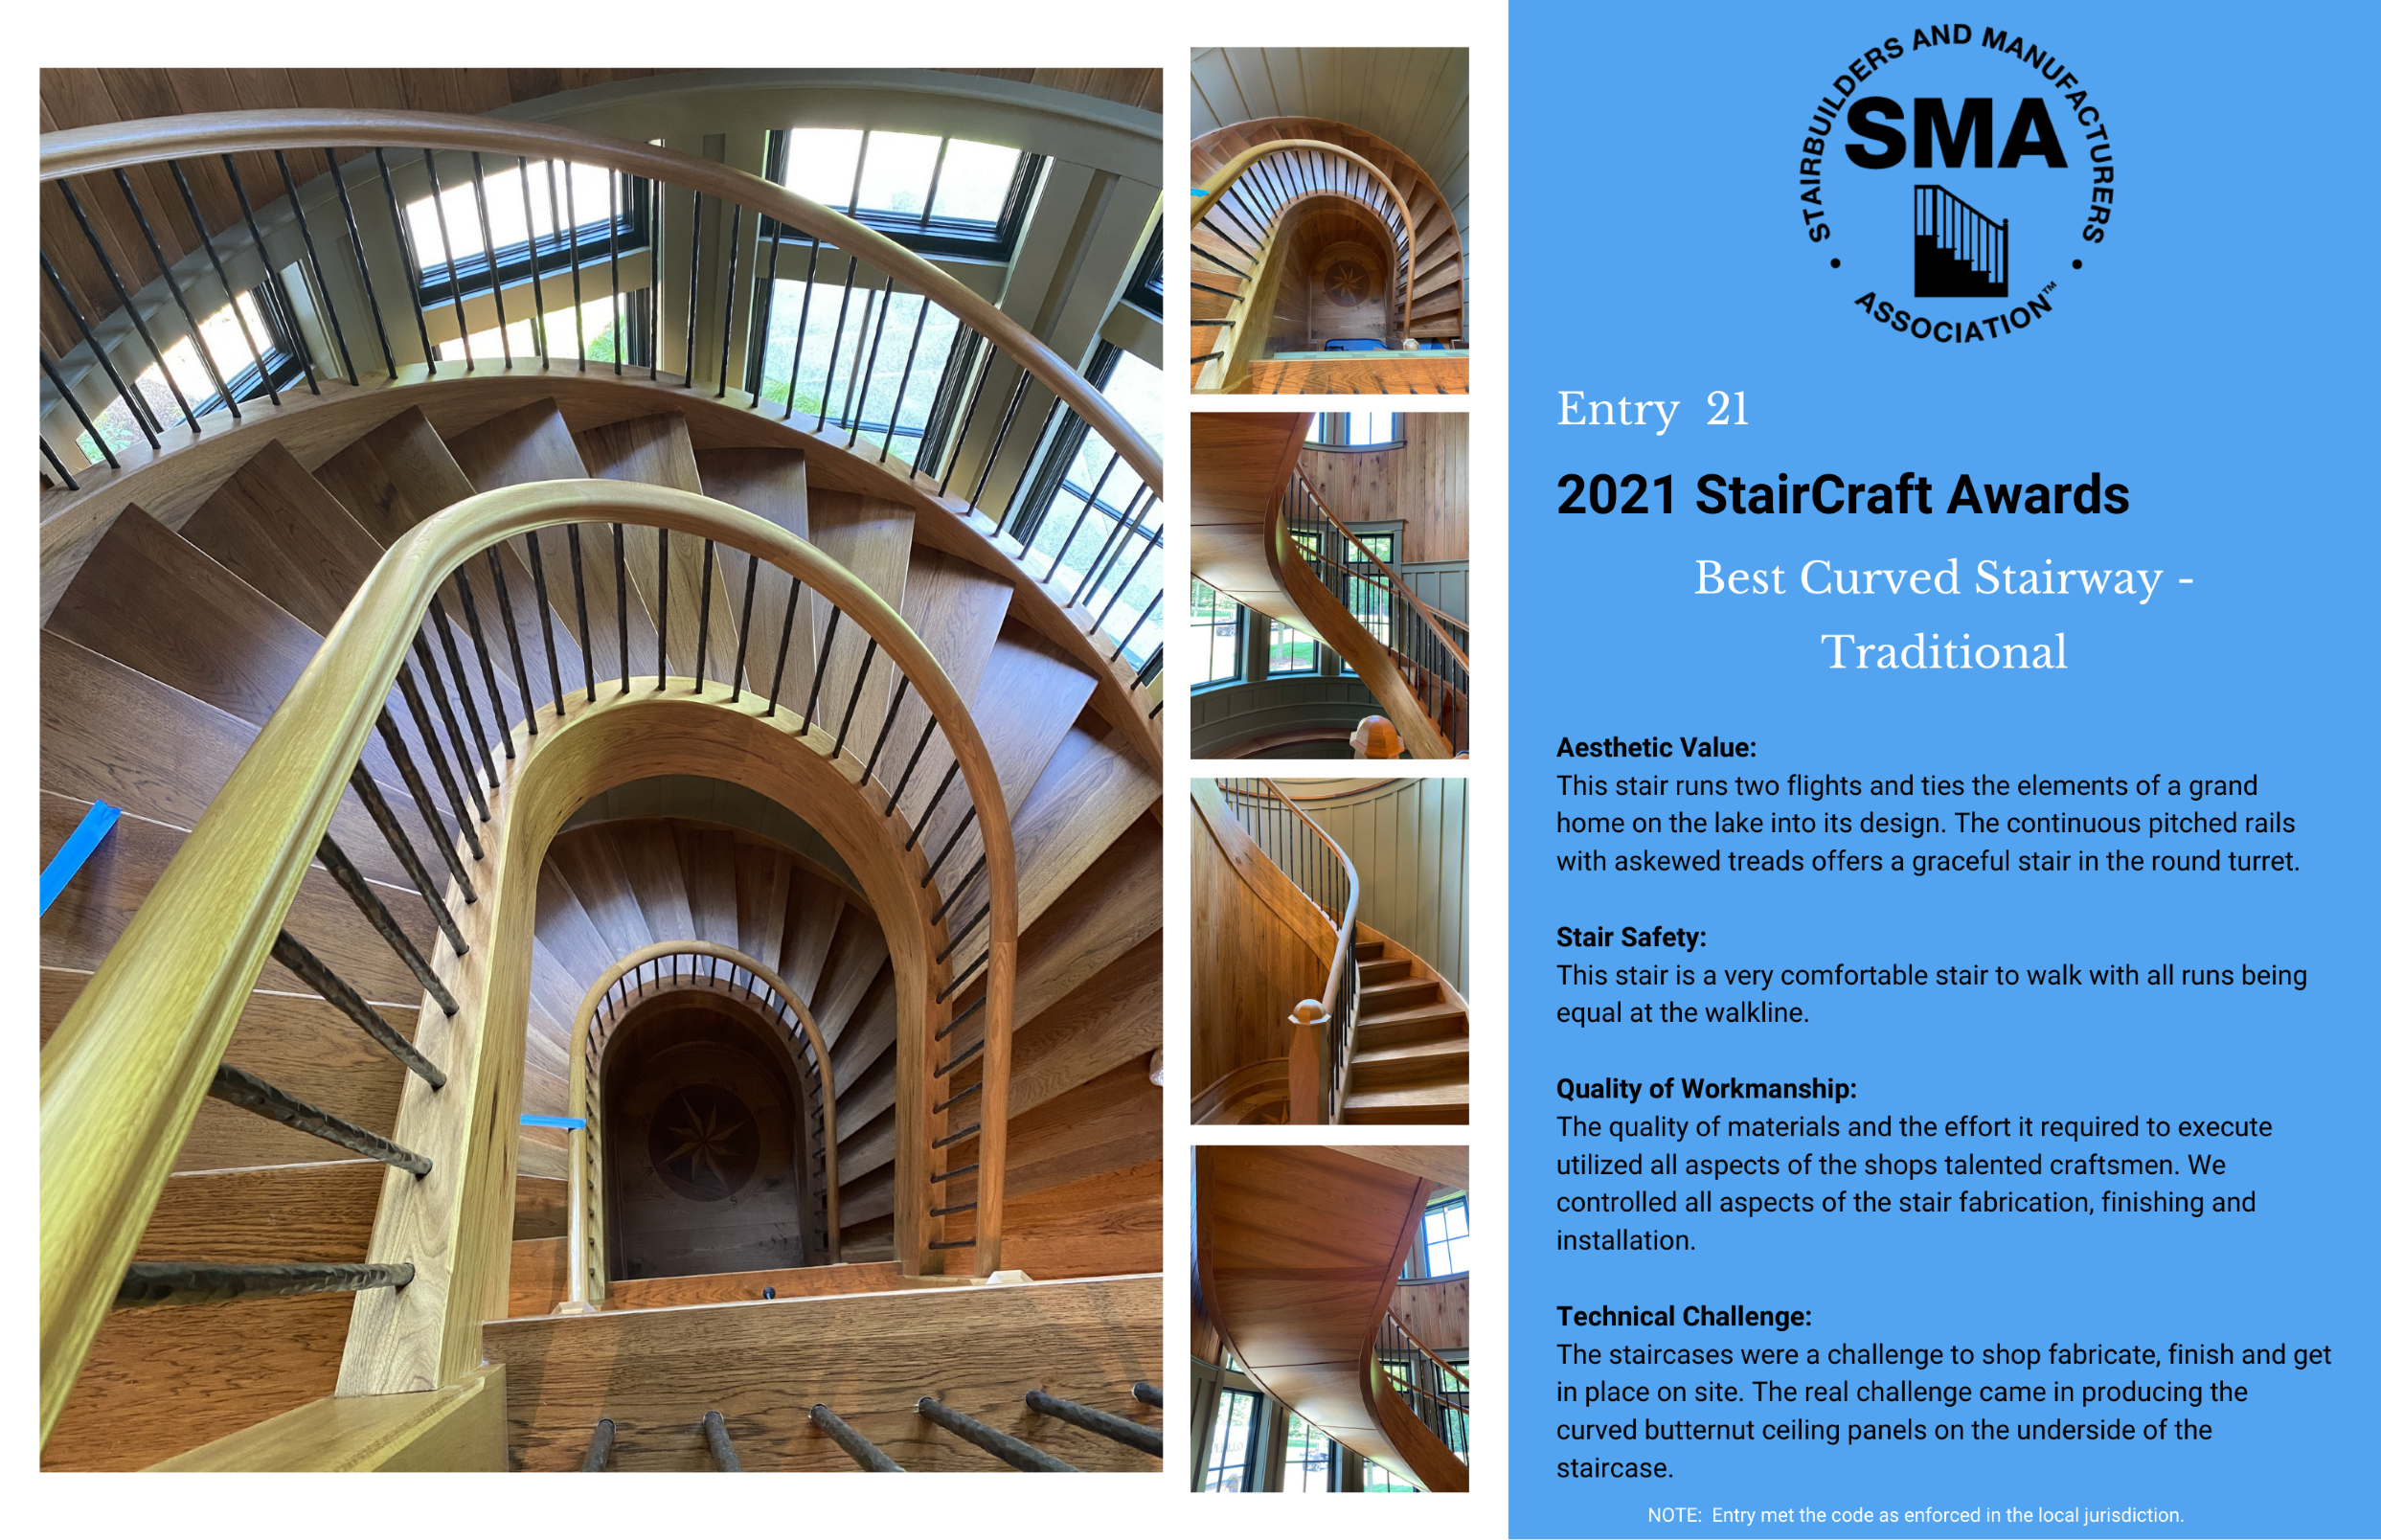 2021 StairCraft Awards Entry 21